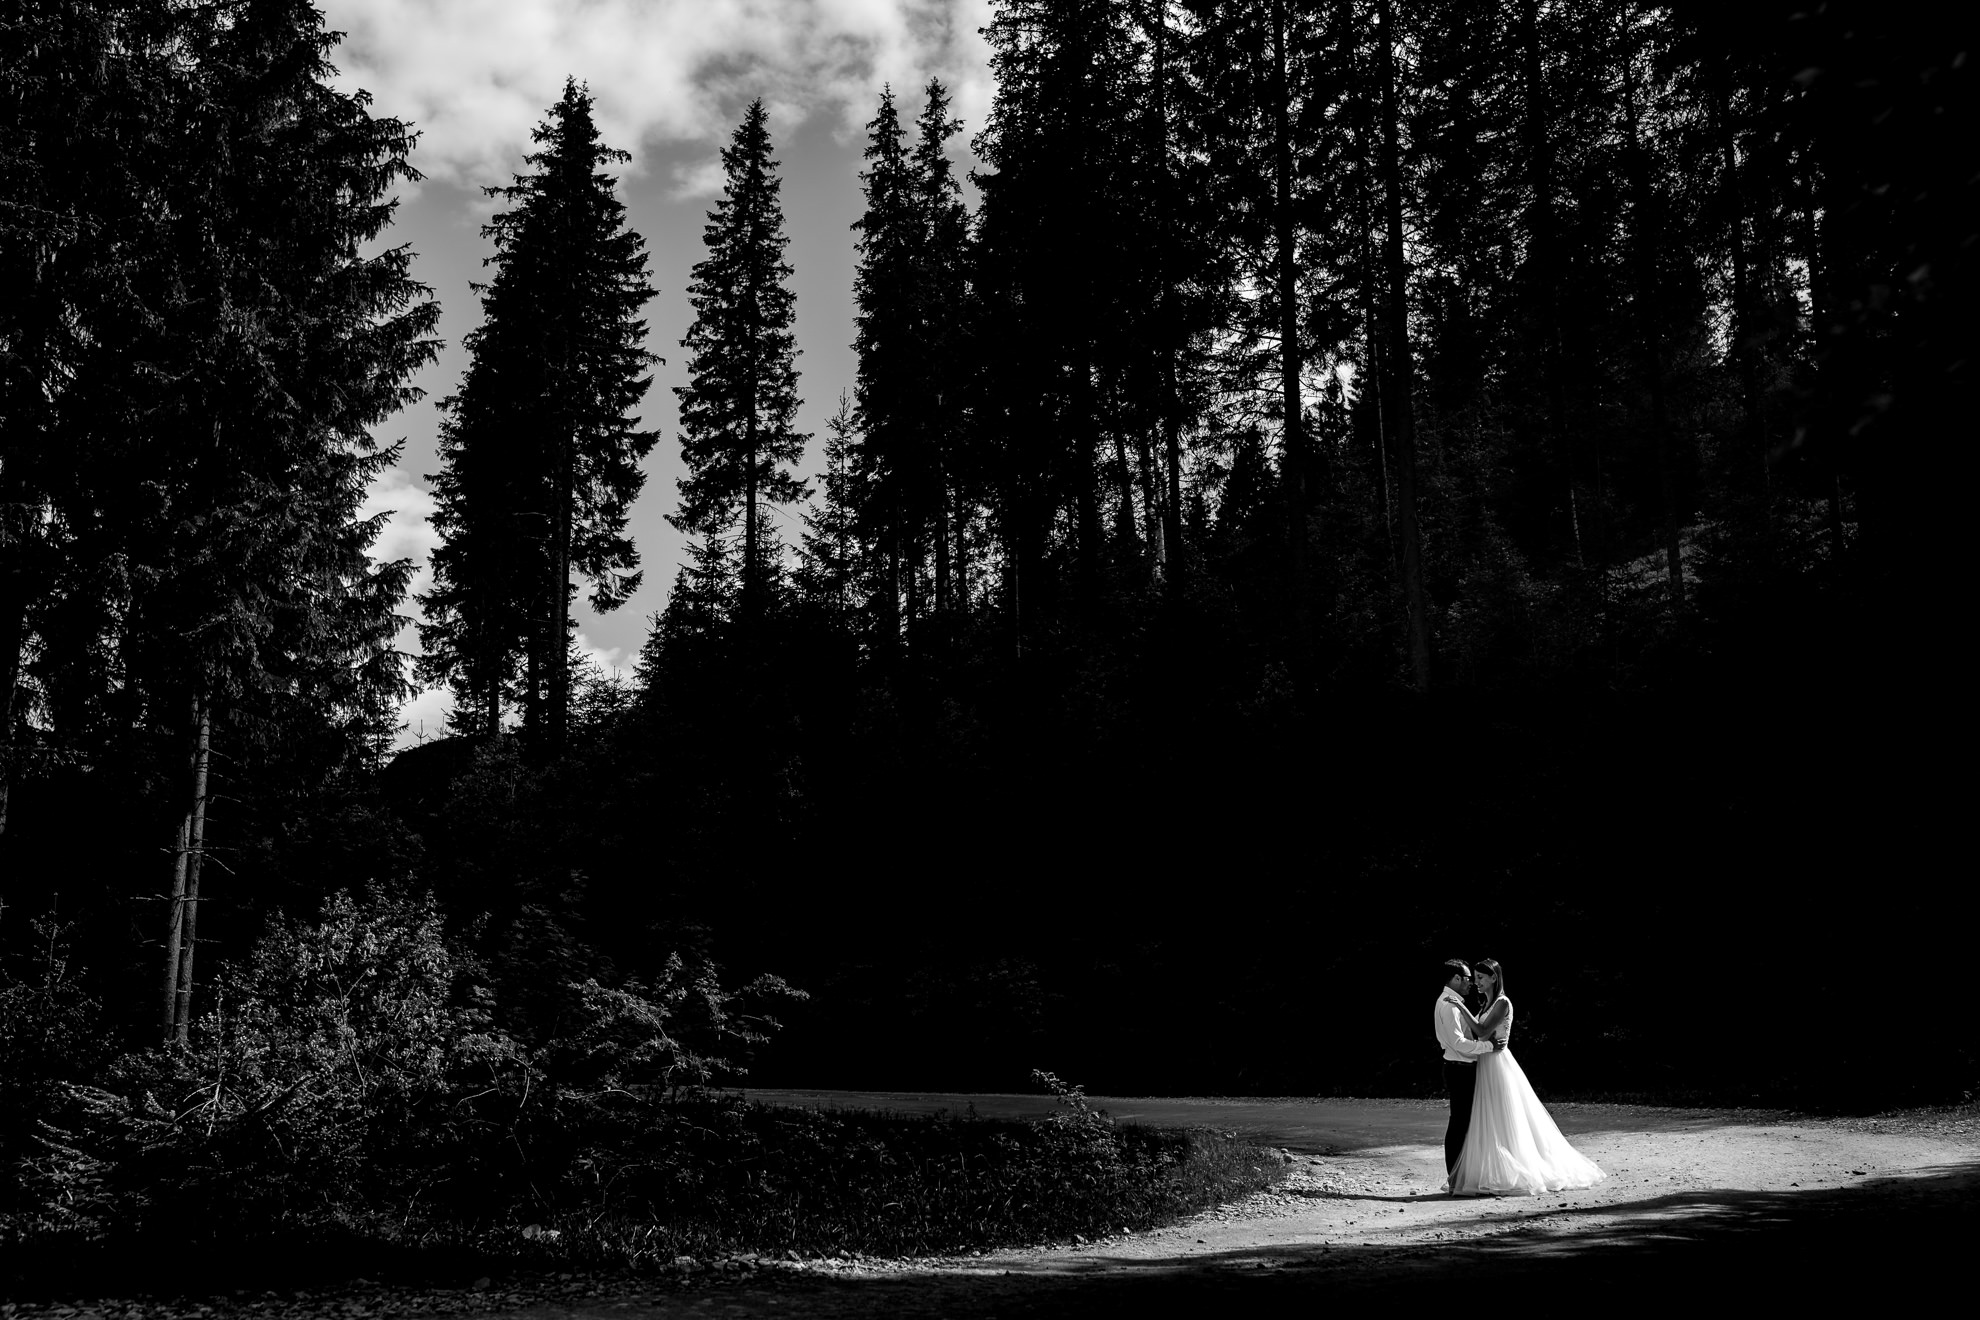 Sedinta foto After Wedding - Sedinta foto trash the dress - Fotograf nunta Antonio Socea